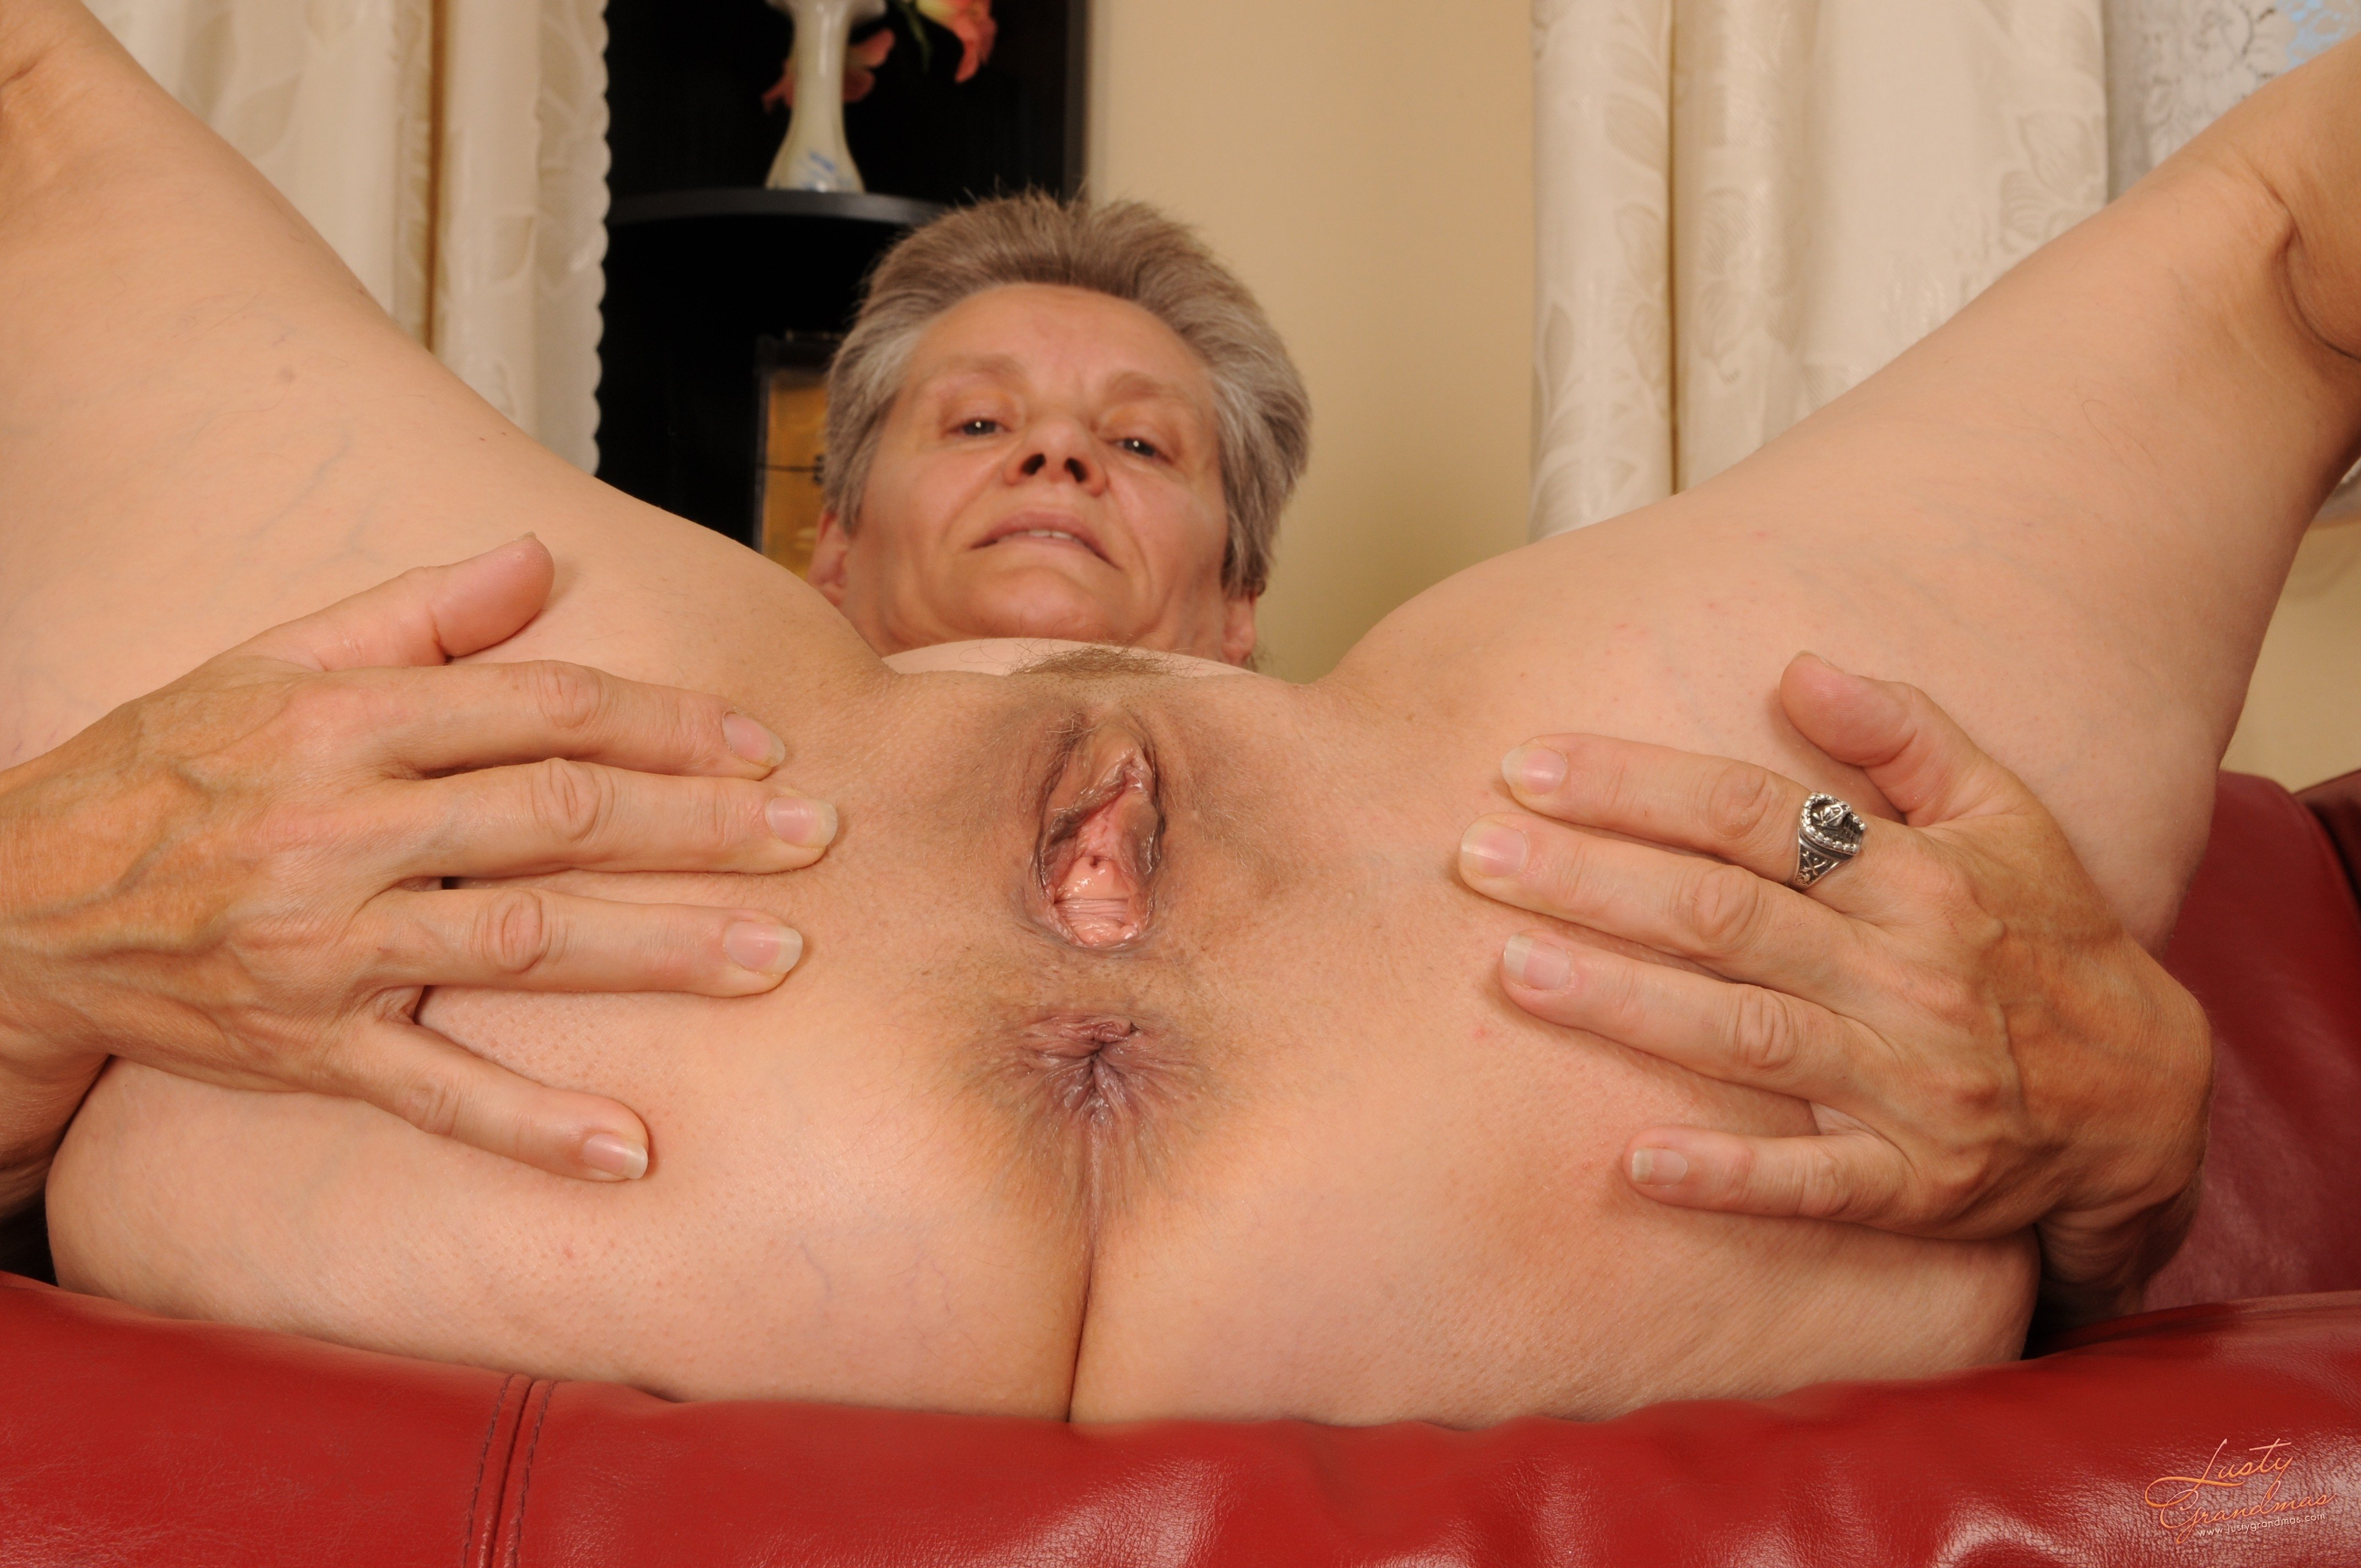 Granny pussy getting nailed porn pics